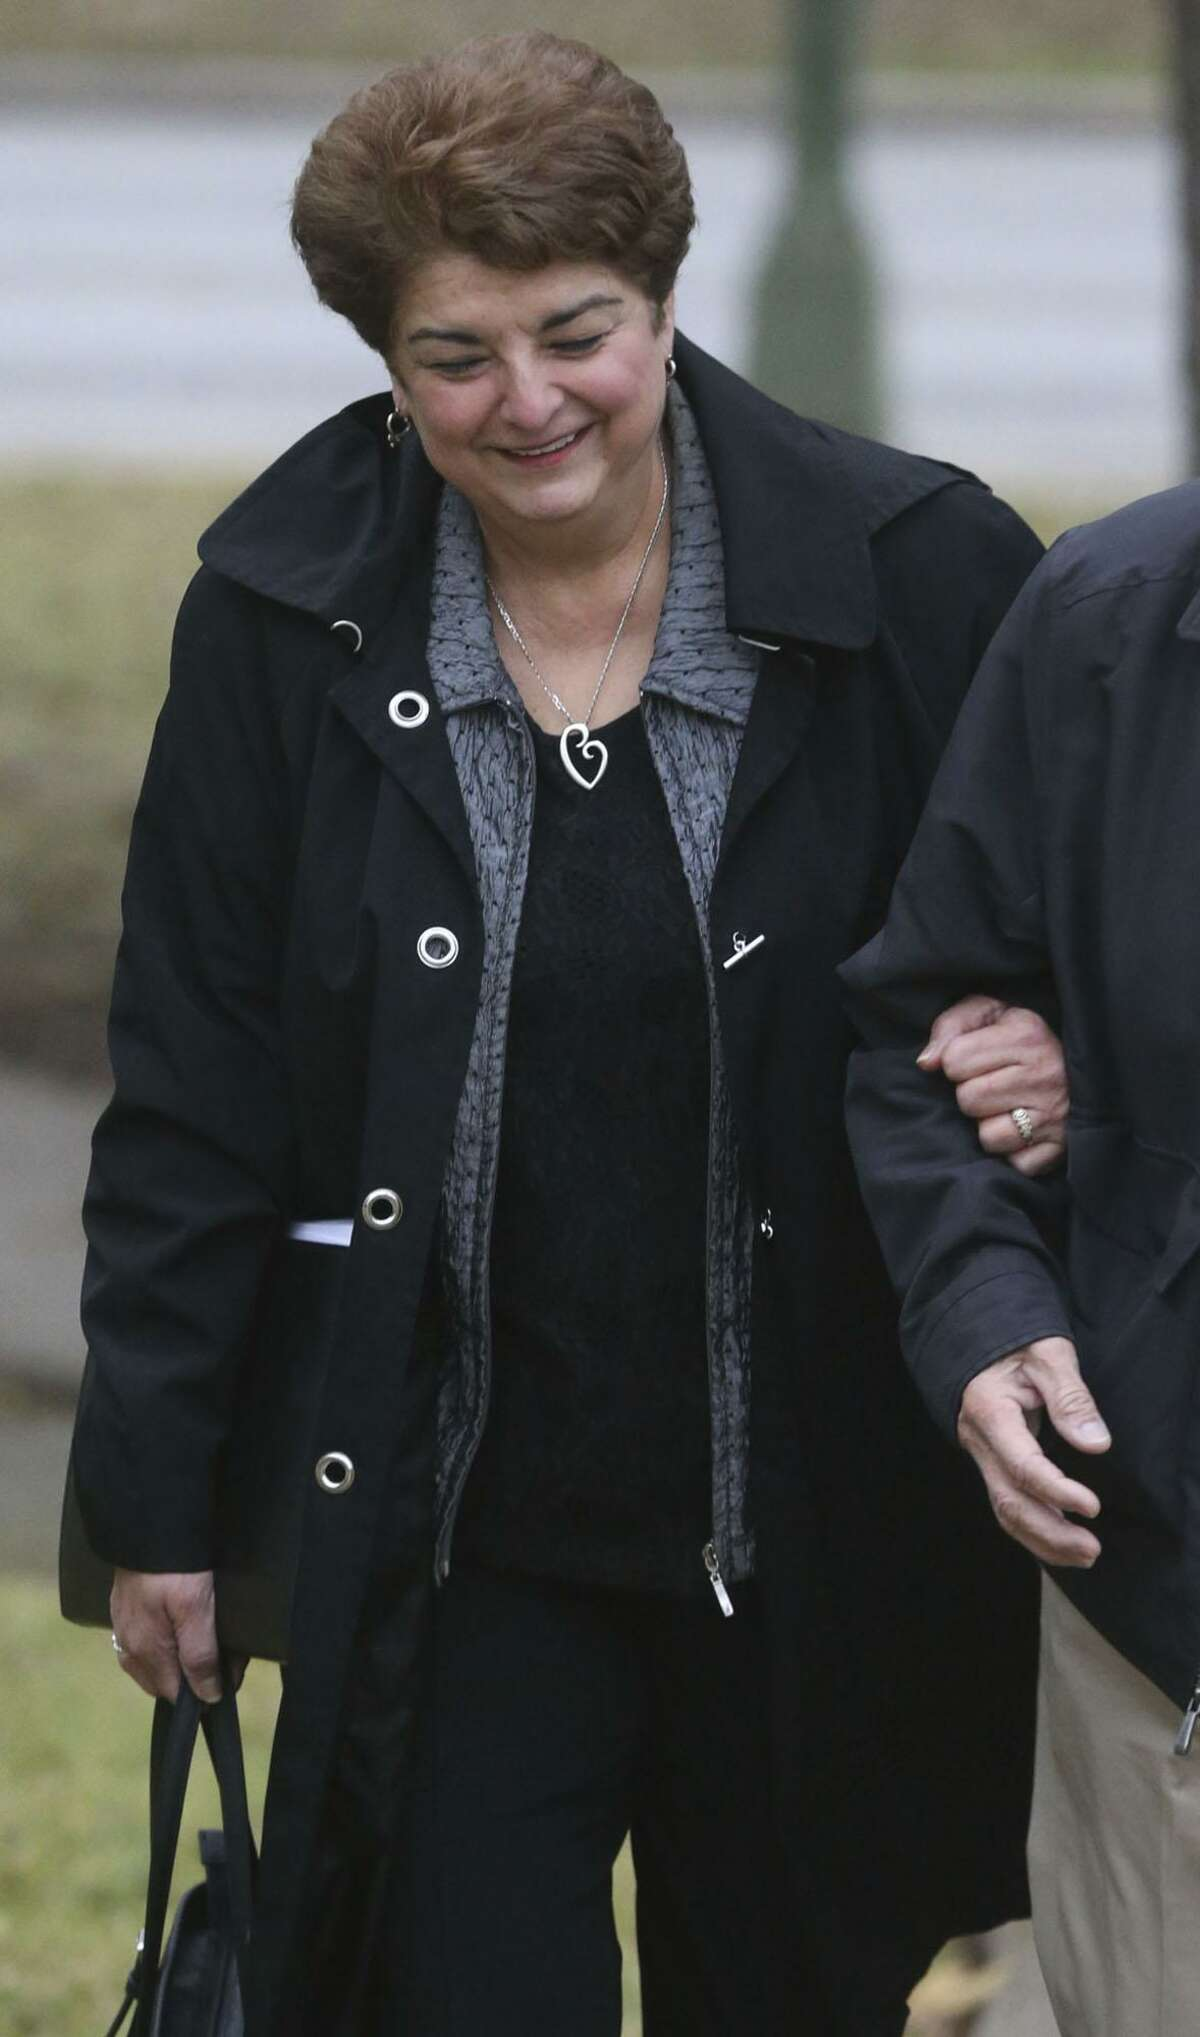 Olga Hernandez approaches the John H. Wood, Jr. Federal Courthouse Monday December 18, 2017. Hernandez is a former San Antonio Independent School District trustee and is on trial for bribery and is expected to testify in her own defense.